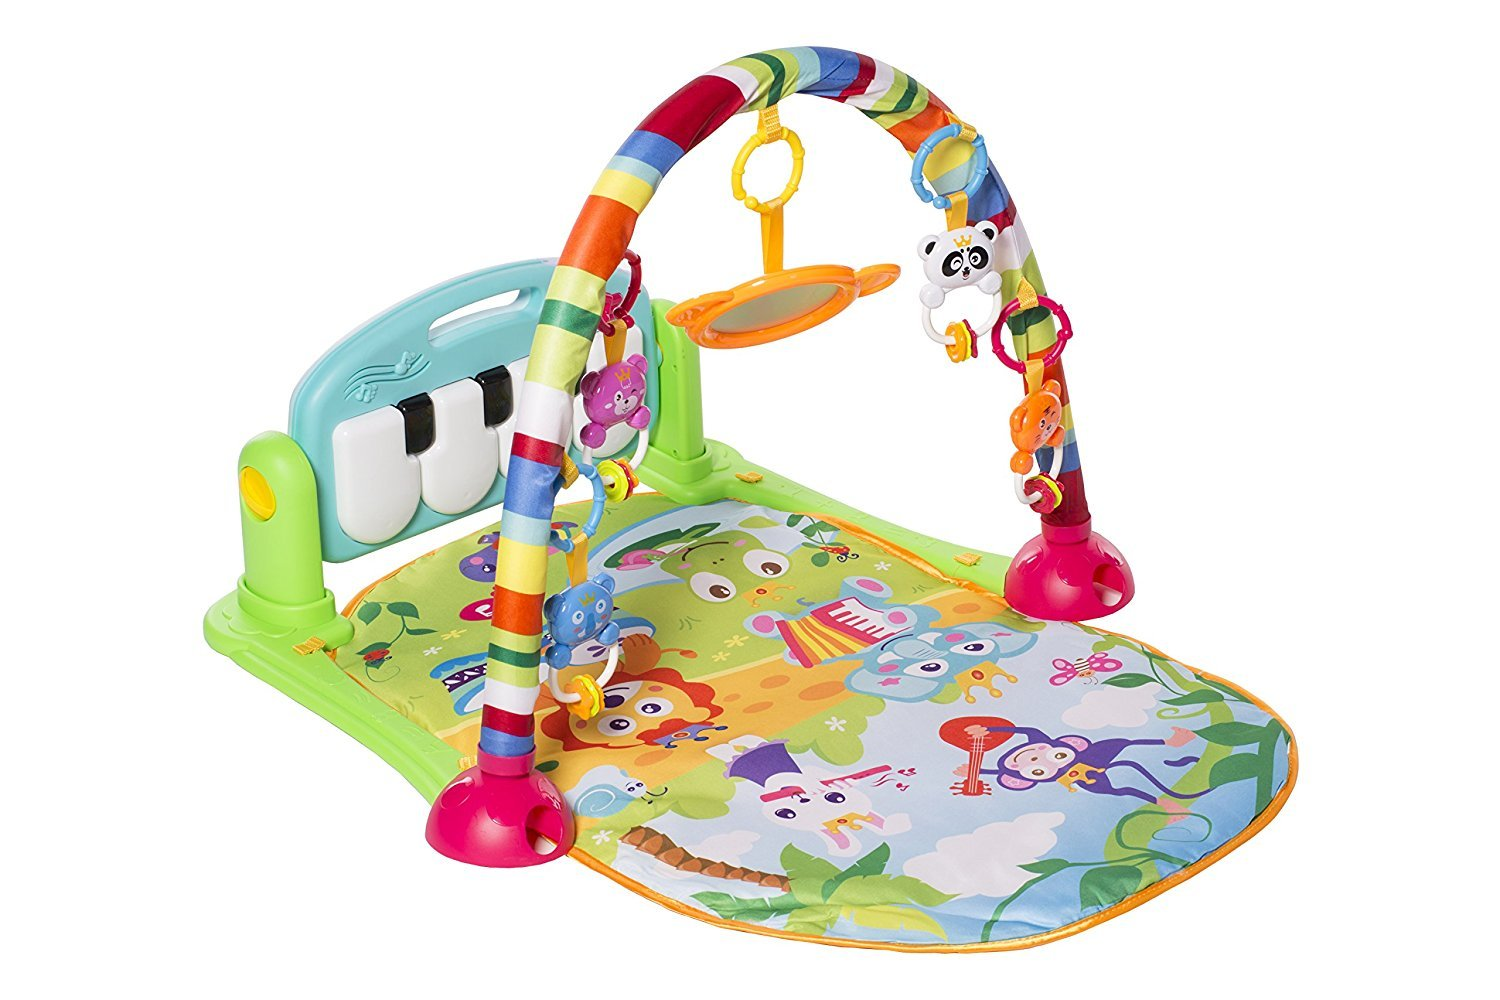 Toyshine Baby's Playmat Gym With Toys (Assorted Color)